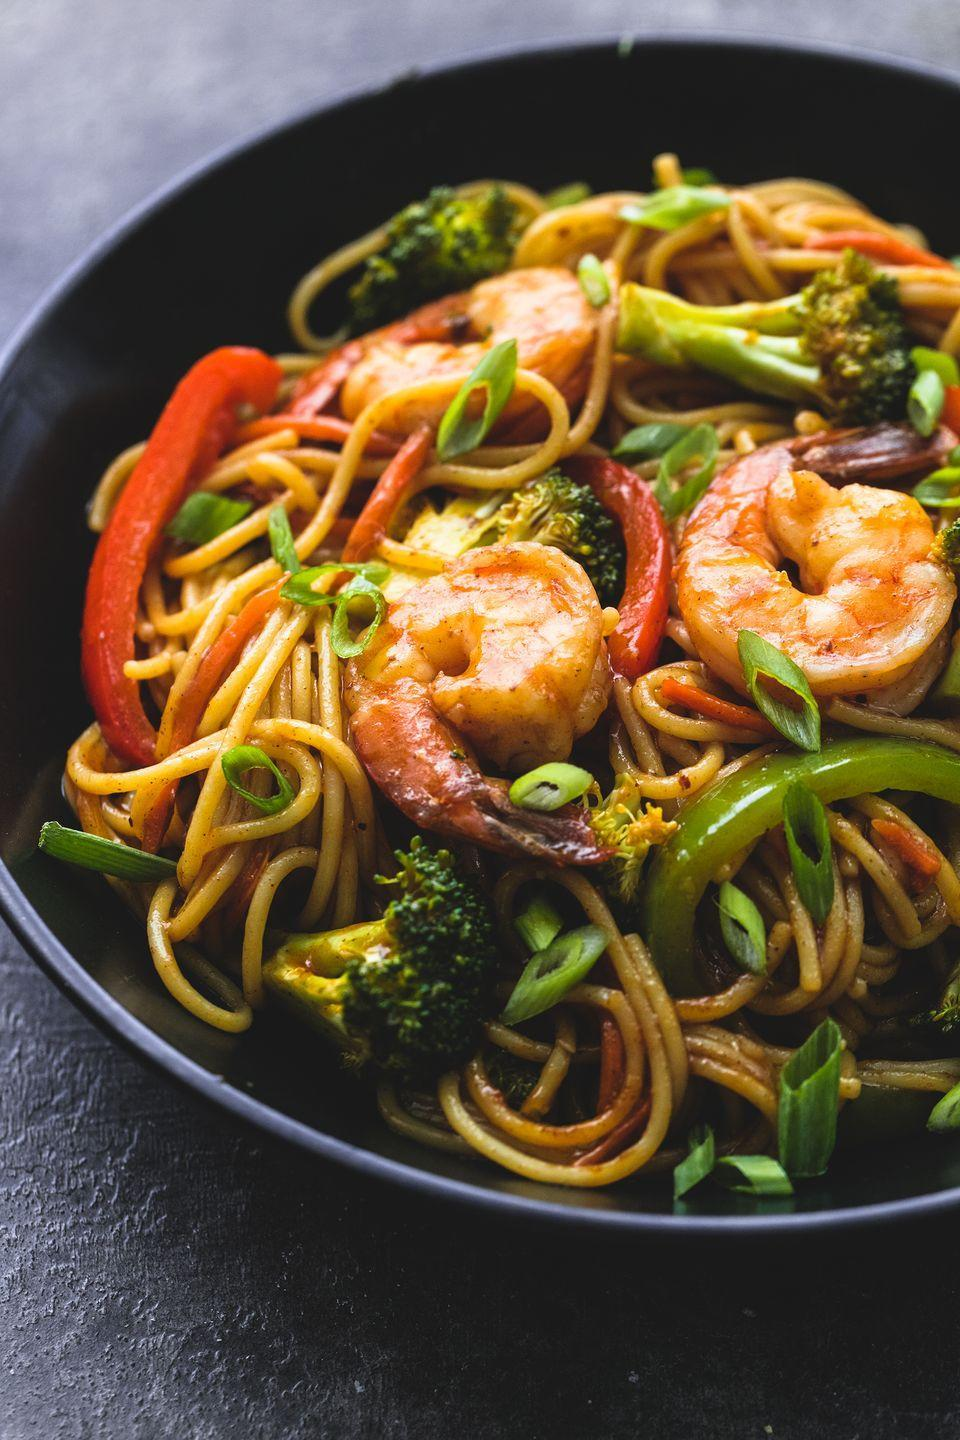 "<p>Takeout? This is better.</p><p>Get the recipe from <a href=""https://www.delish.com/cooking/recipes/a53595/shrimp-broccoli-lo-mein-recipe/"" rel=""nofollow noopener"" target=""_blank"" data-ylk=""slk:Delish"" class=""link rapid-noclick-resp"">Delish</a>.</p><p><a class=""link rapid-noclick-resp"" href=""https://www.amazon.com/Creuset-Signature-Handle-Skillet-4-Inch/dp/B00B4UOTBQ/?tag=syn-yahoo-20&ascsubtag=%5Bartid%7C1782.g.241%5Bsrc%7Cyahoo-us"" rel=""nofollow noopener"" target=""_blank"" data-ylk=""slk:BUY NOW"">BUY NOW</a><strong><em> Le Creuset Cast Iron Skillet, $200, amazon.com</em></strong><br></p>"